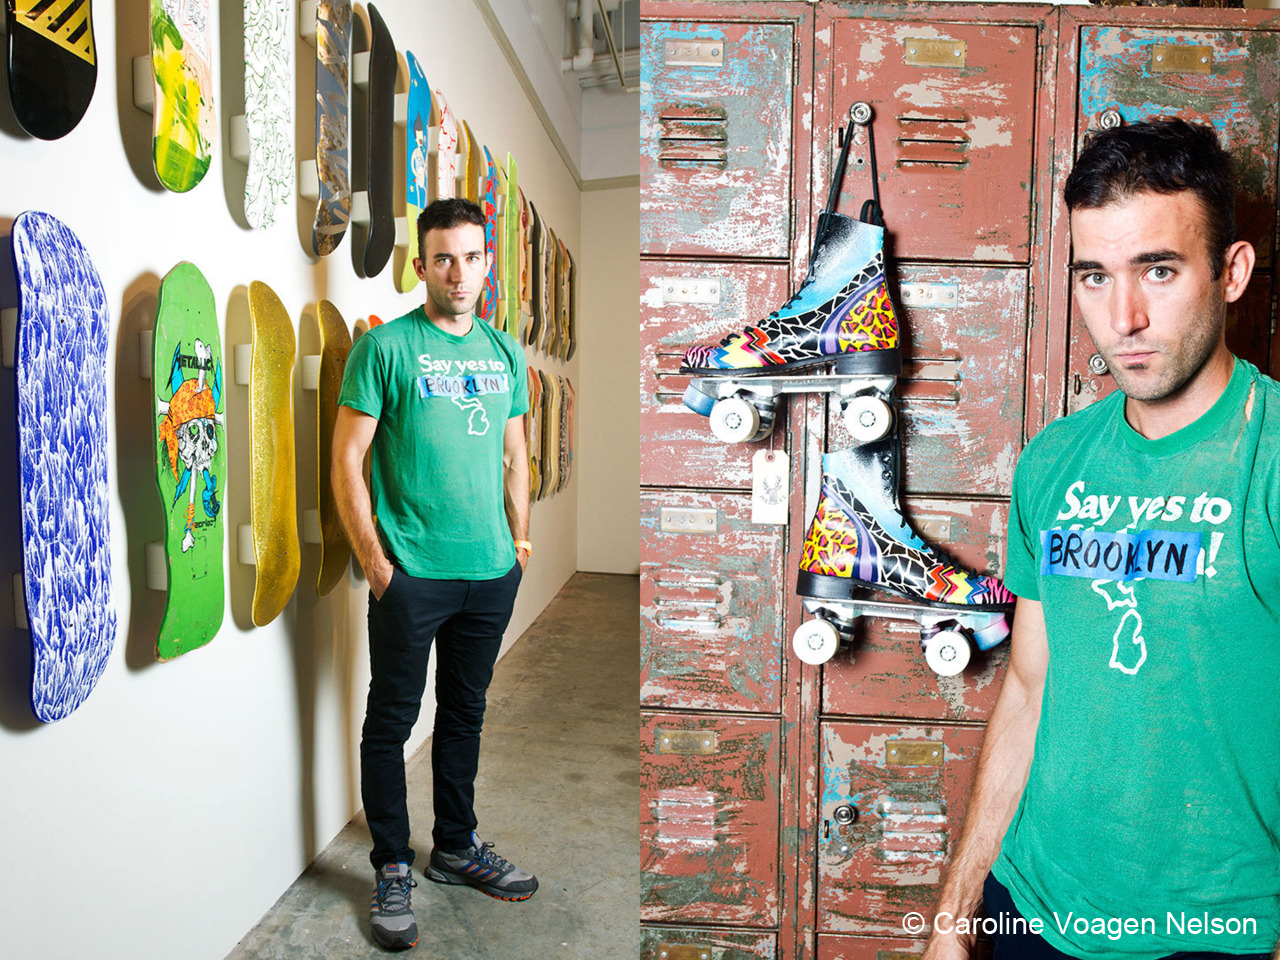 Here's photos from my shoot with Sufjan Stevens at 1-20 Gallery, talking  about how outsider artist Royal Robertson has influenced his music. Say YES to Brooklyn!